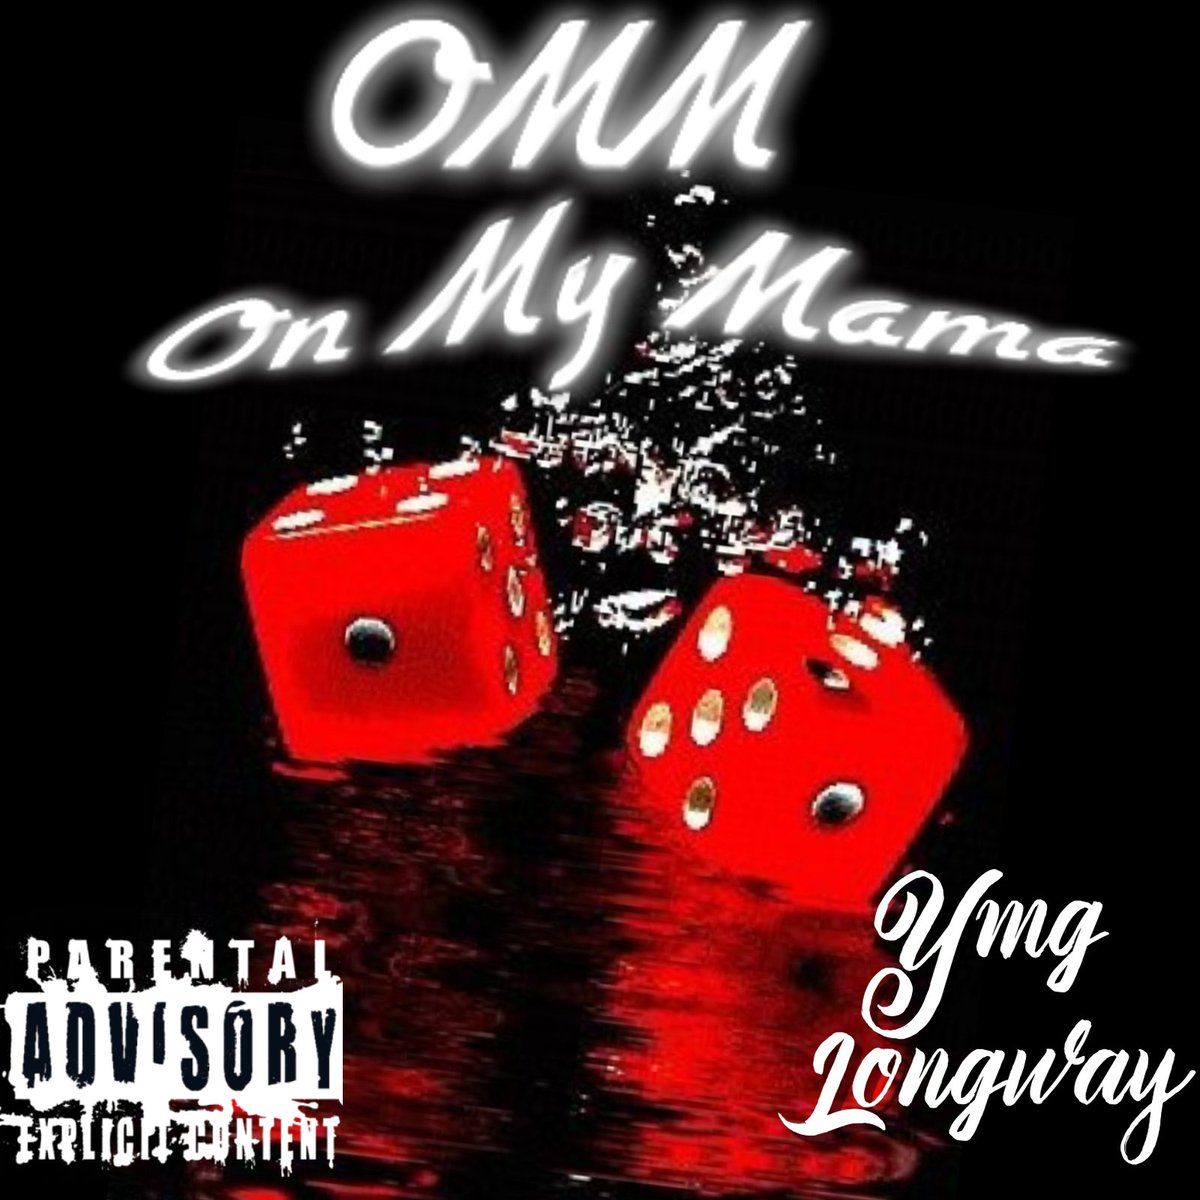 New Single I'm Working On Called OMM<br>http://pic.twitter.com/6dE0kkivNm